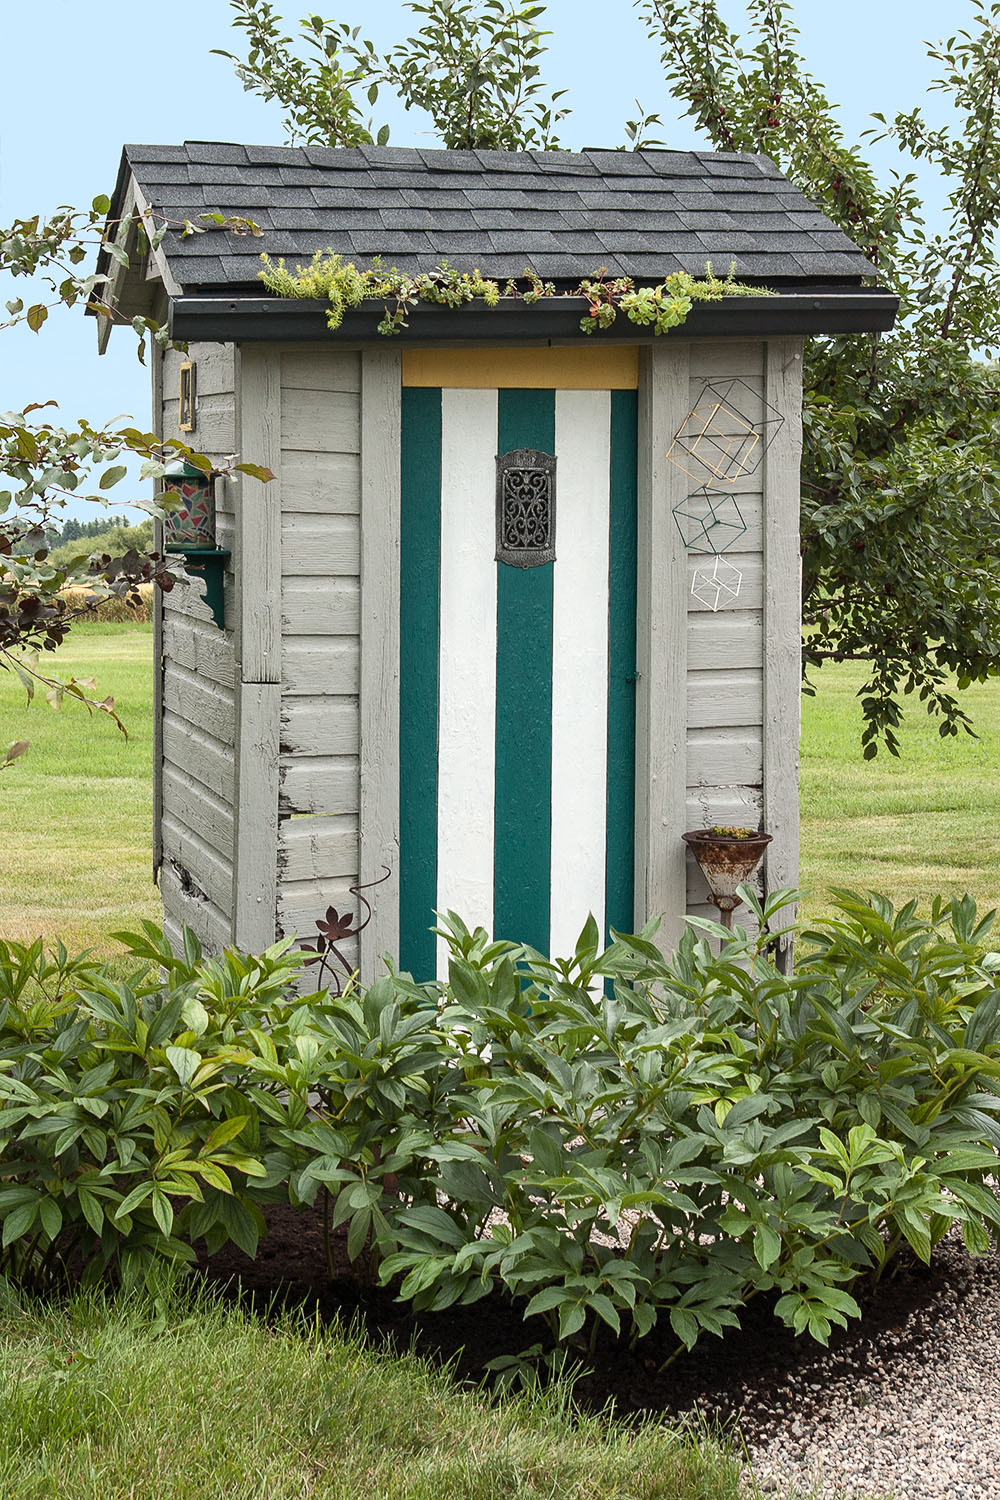 An outhouse turned into a garden shed